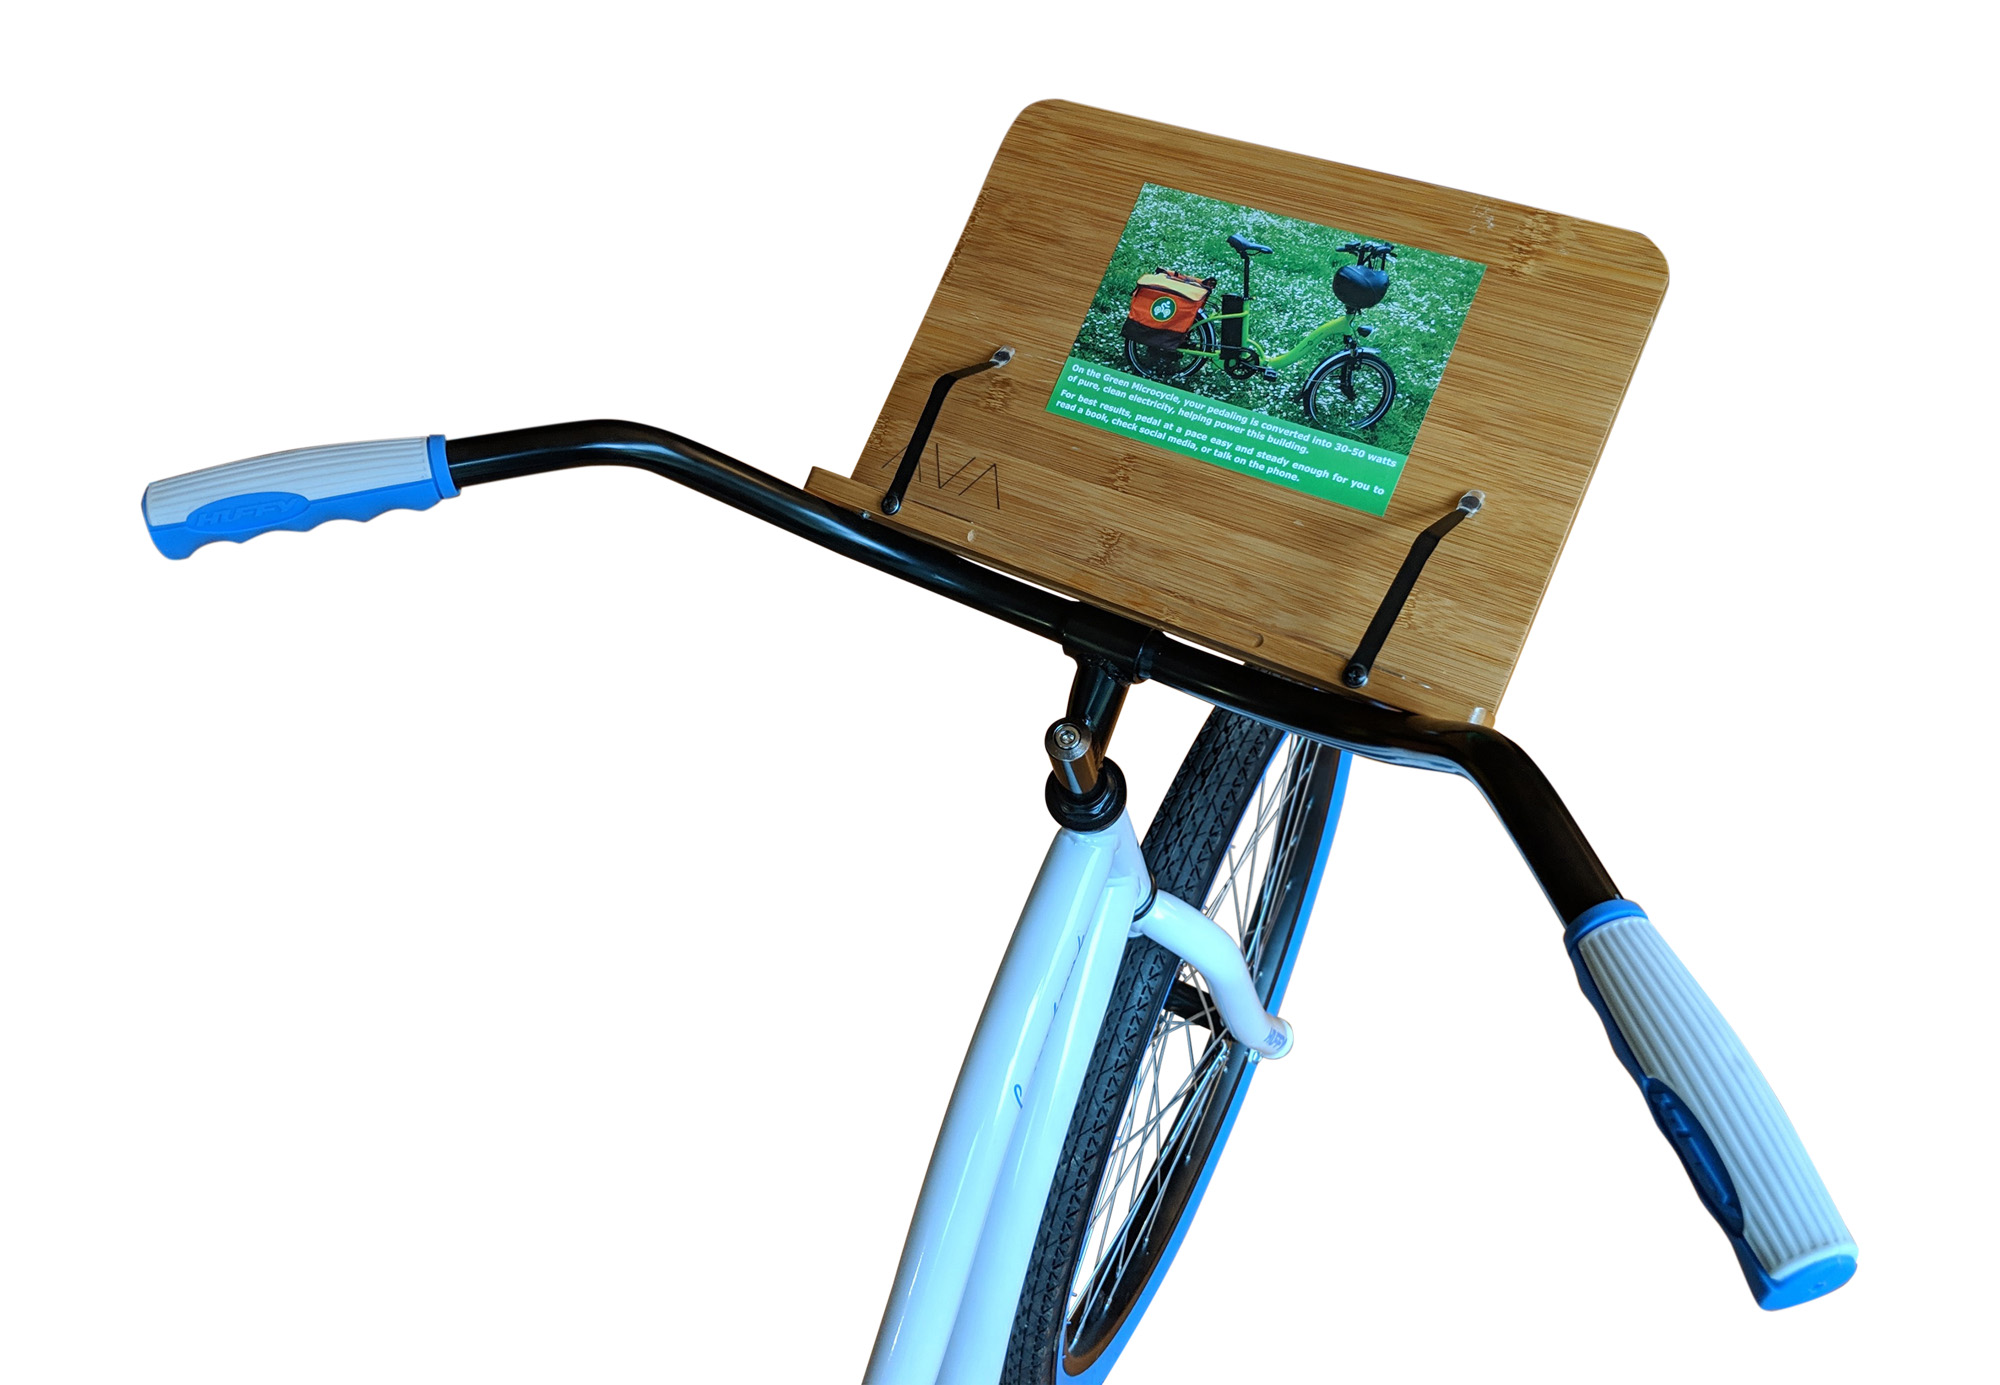 The Green Microcycle Read And Ride Bike